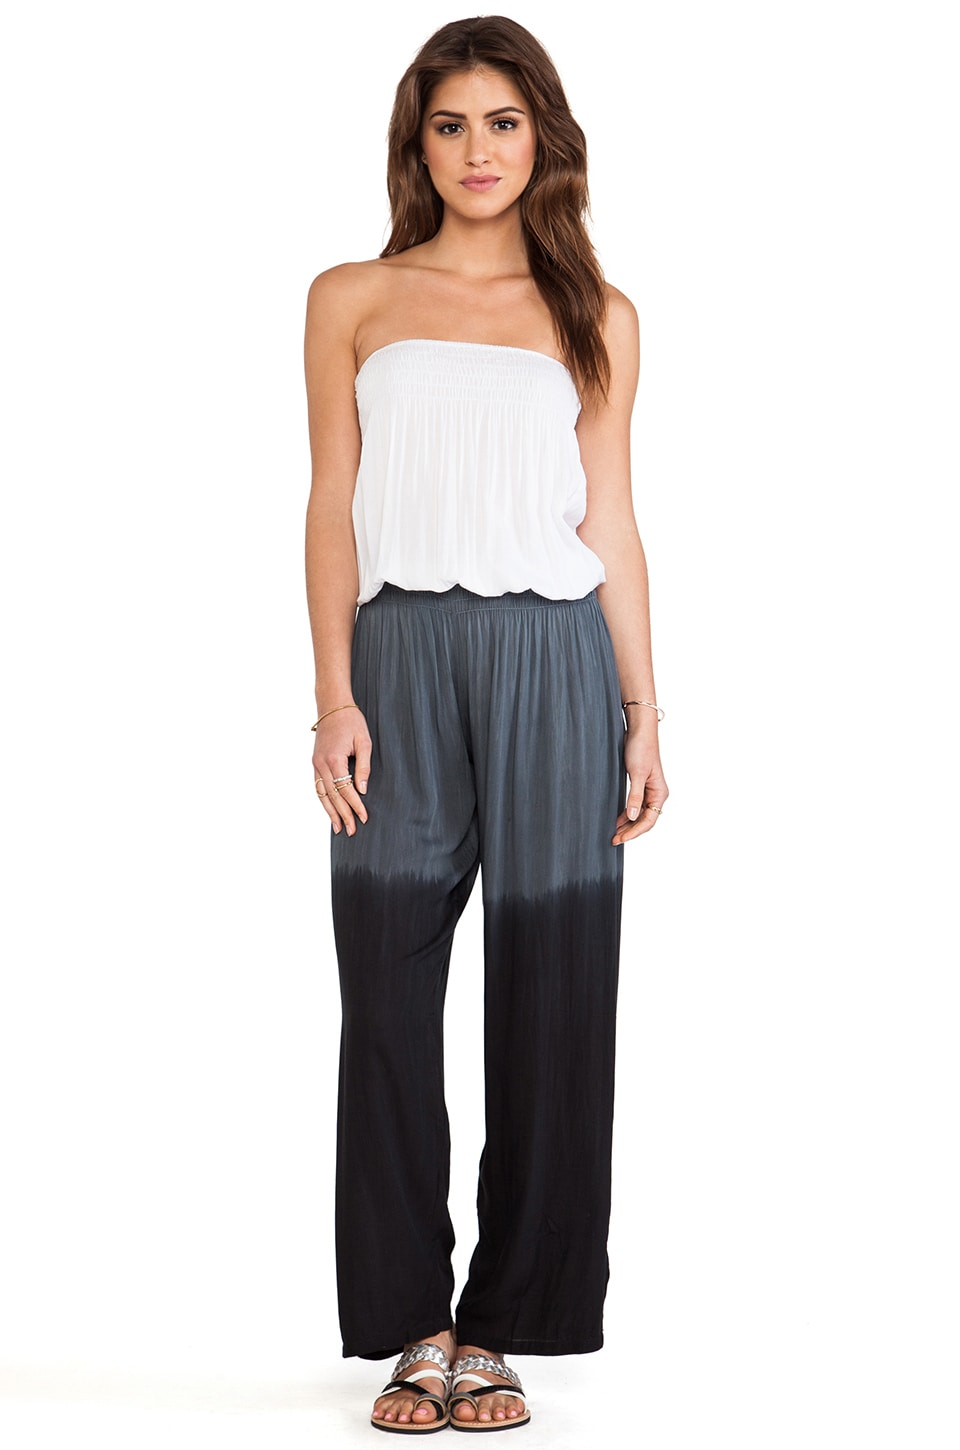 Tiare Hawaii Jaws Pantsuit in White & Grey & Black